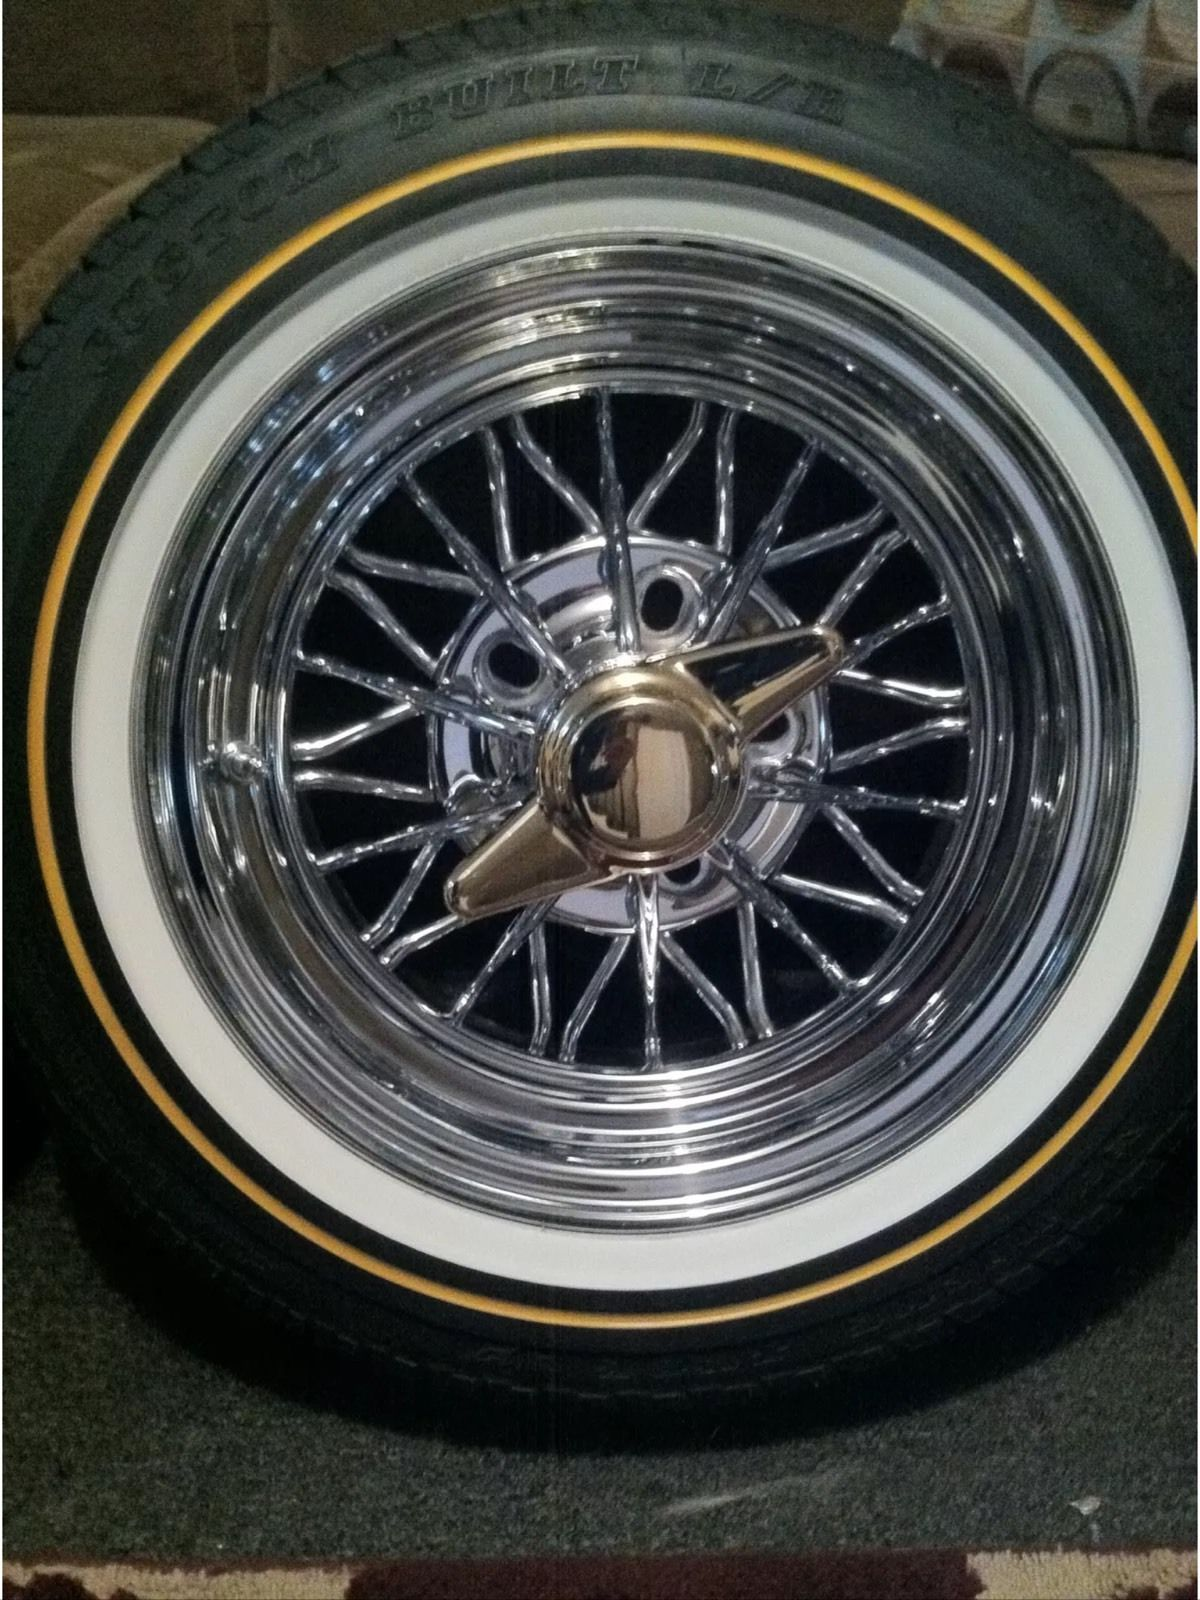 14x6 Cragar 30 Spoke Starwire Wheels with Vogue Tires | WWW ...